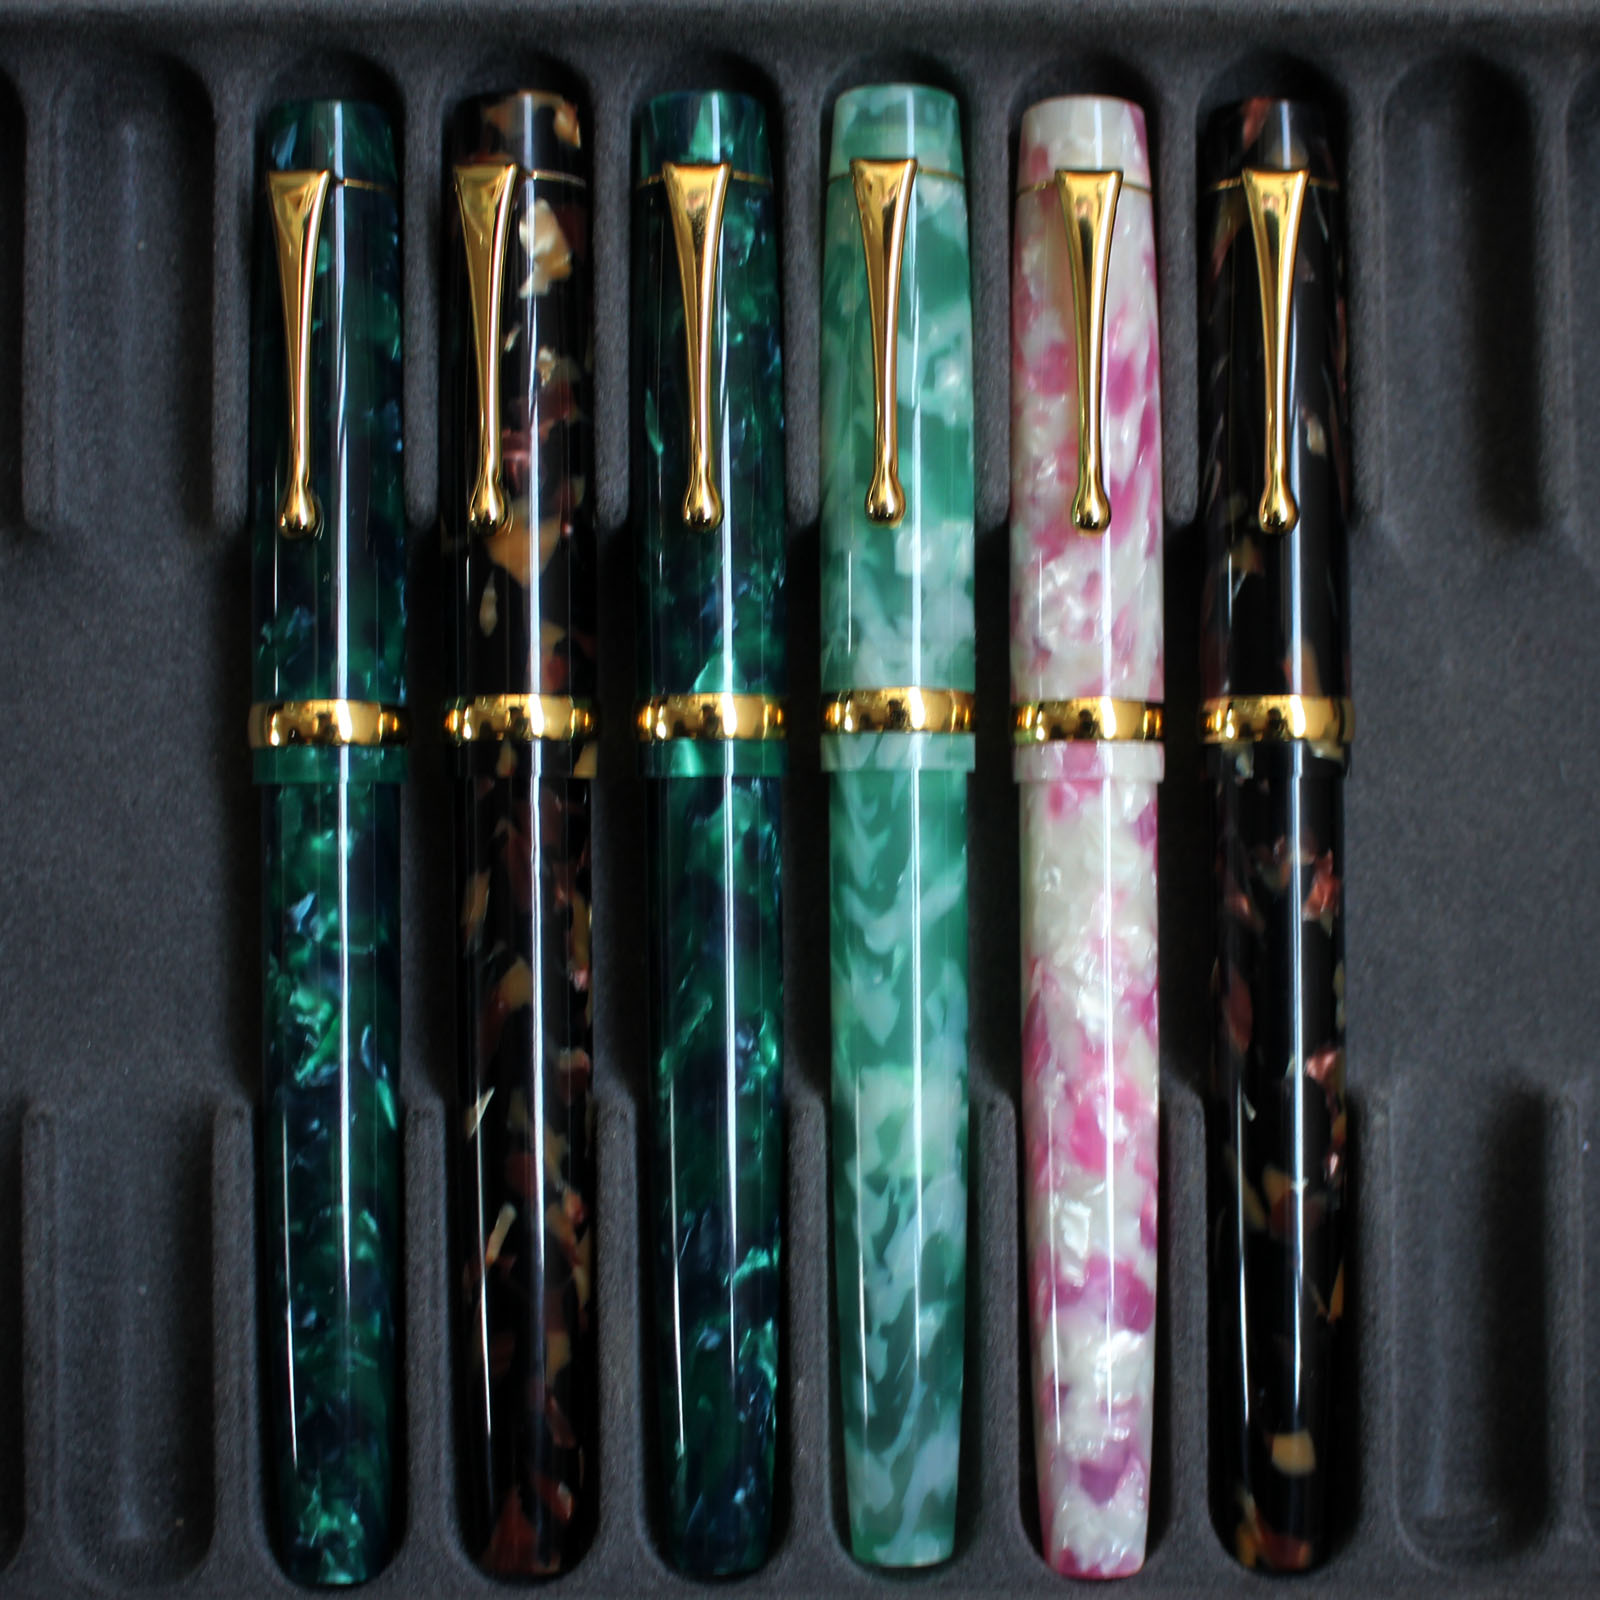 OEM Resin Fountain Pen Beauiful Ink Pen Converter Filler Fine Nib Business Stationery Office School Supplies Writing Gift